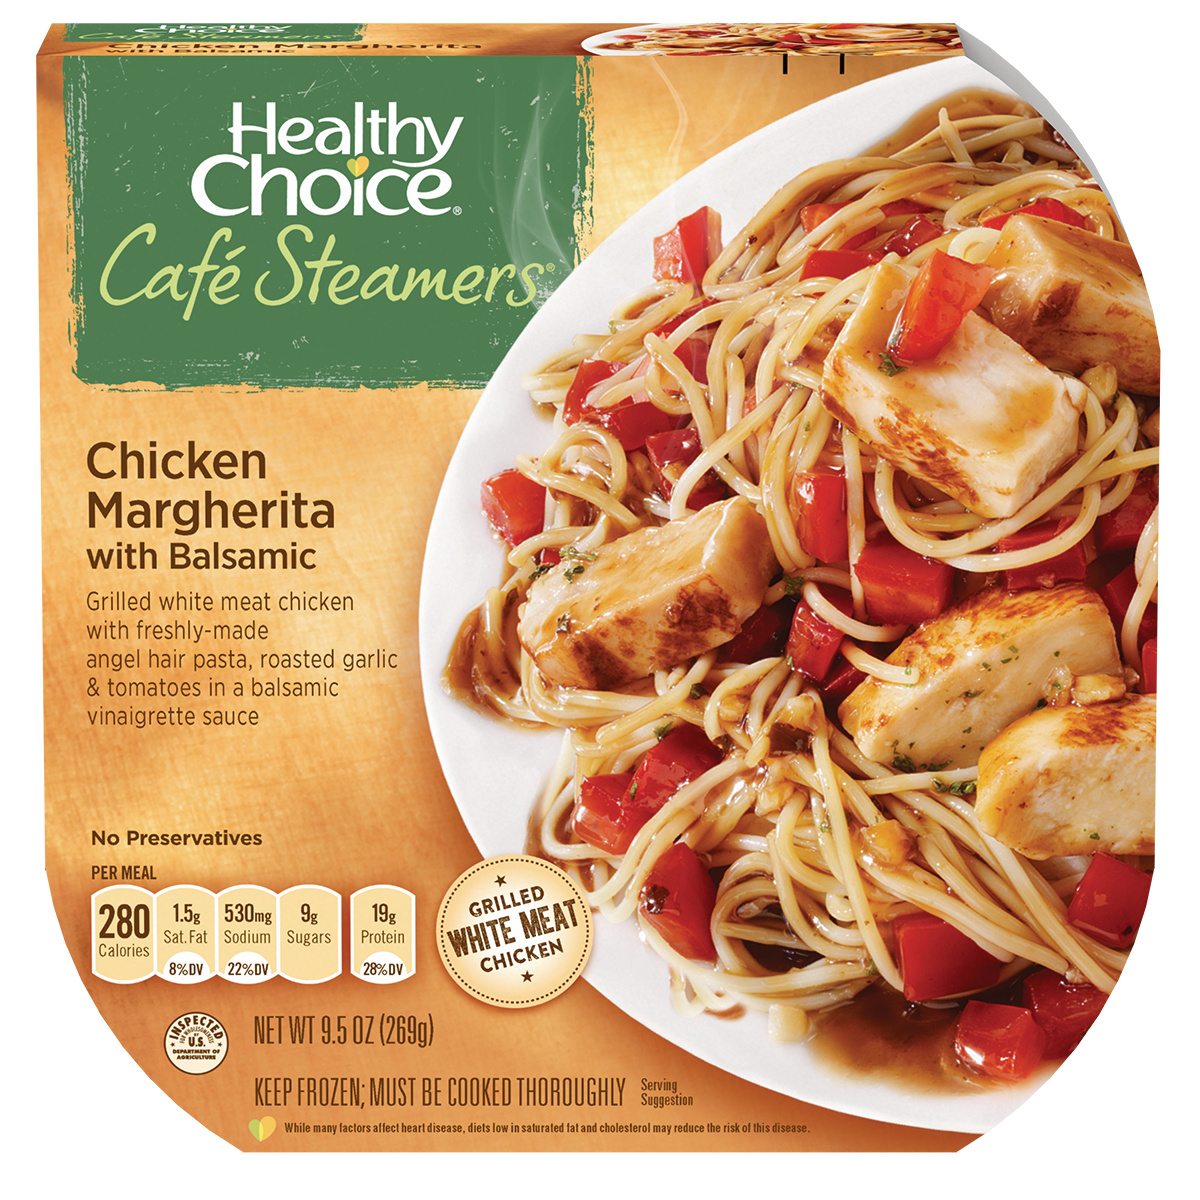 Healthy Choice Cafe Steamers Top Chef Chicken Margherita with Balsamic, 9.5 oz